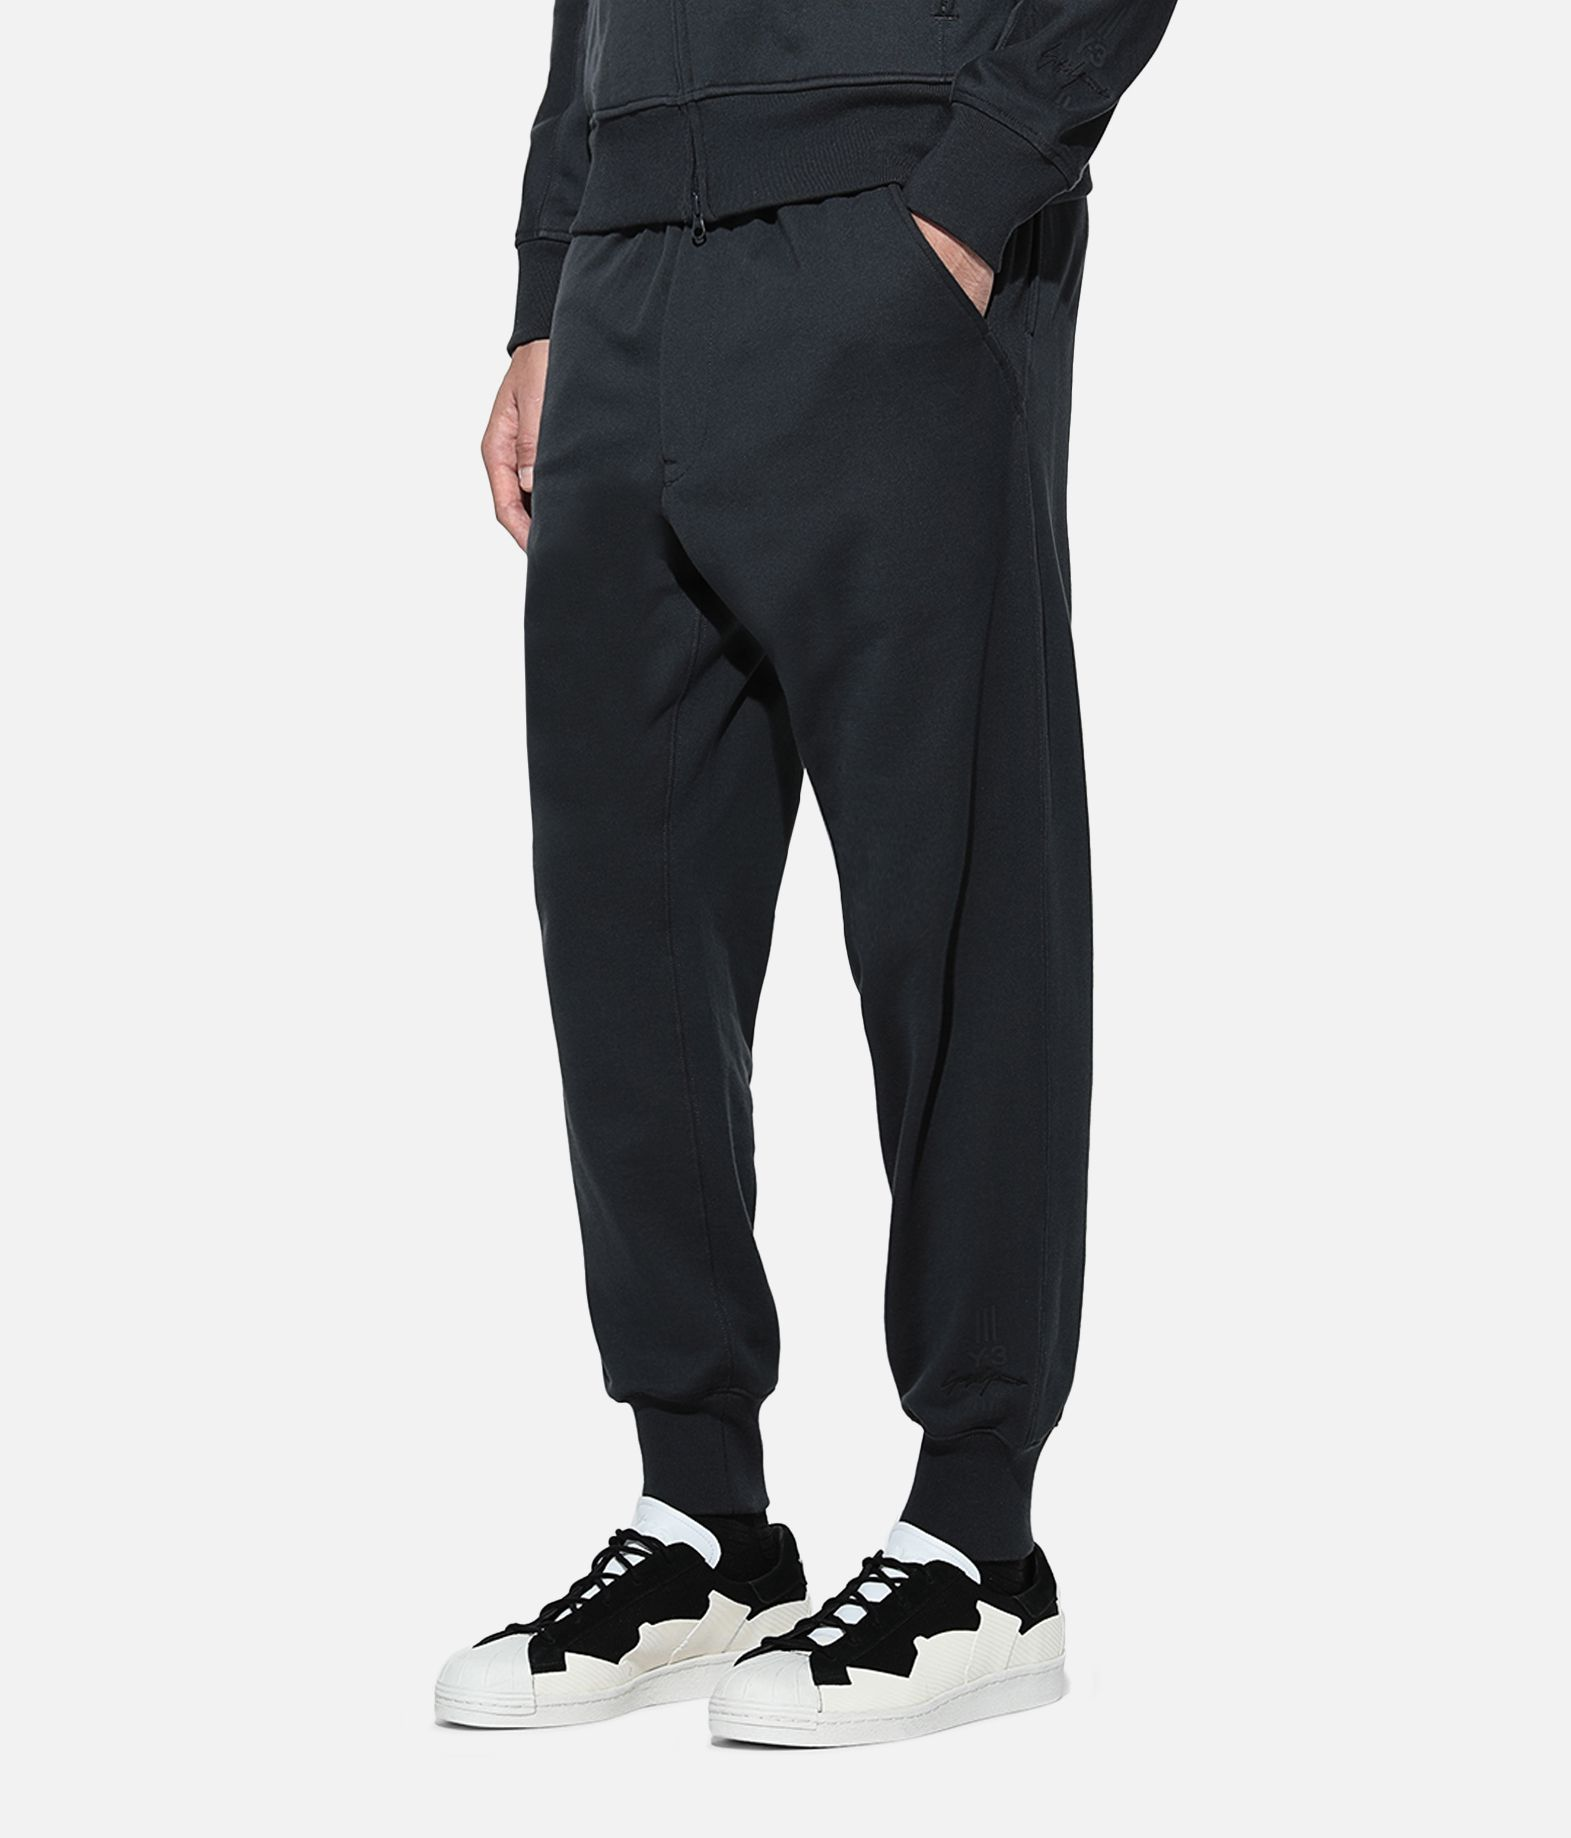 Y-3 Y-3 Classic Cuffed Pants Sweatpants Man e